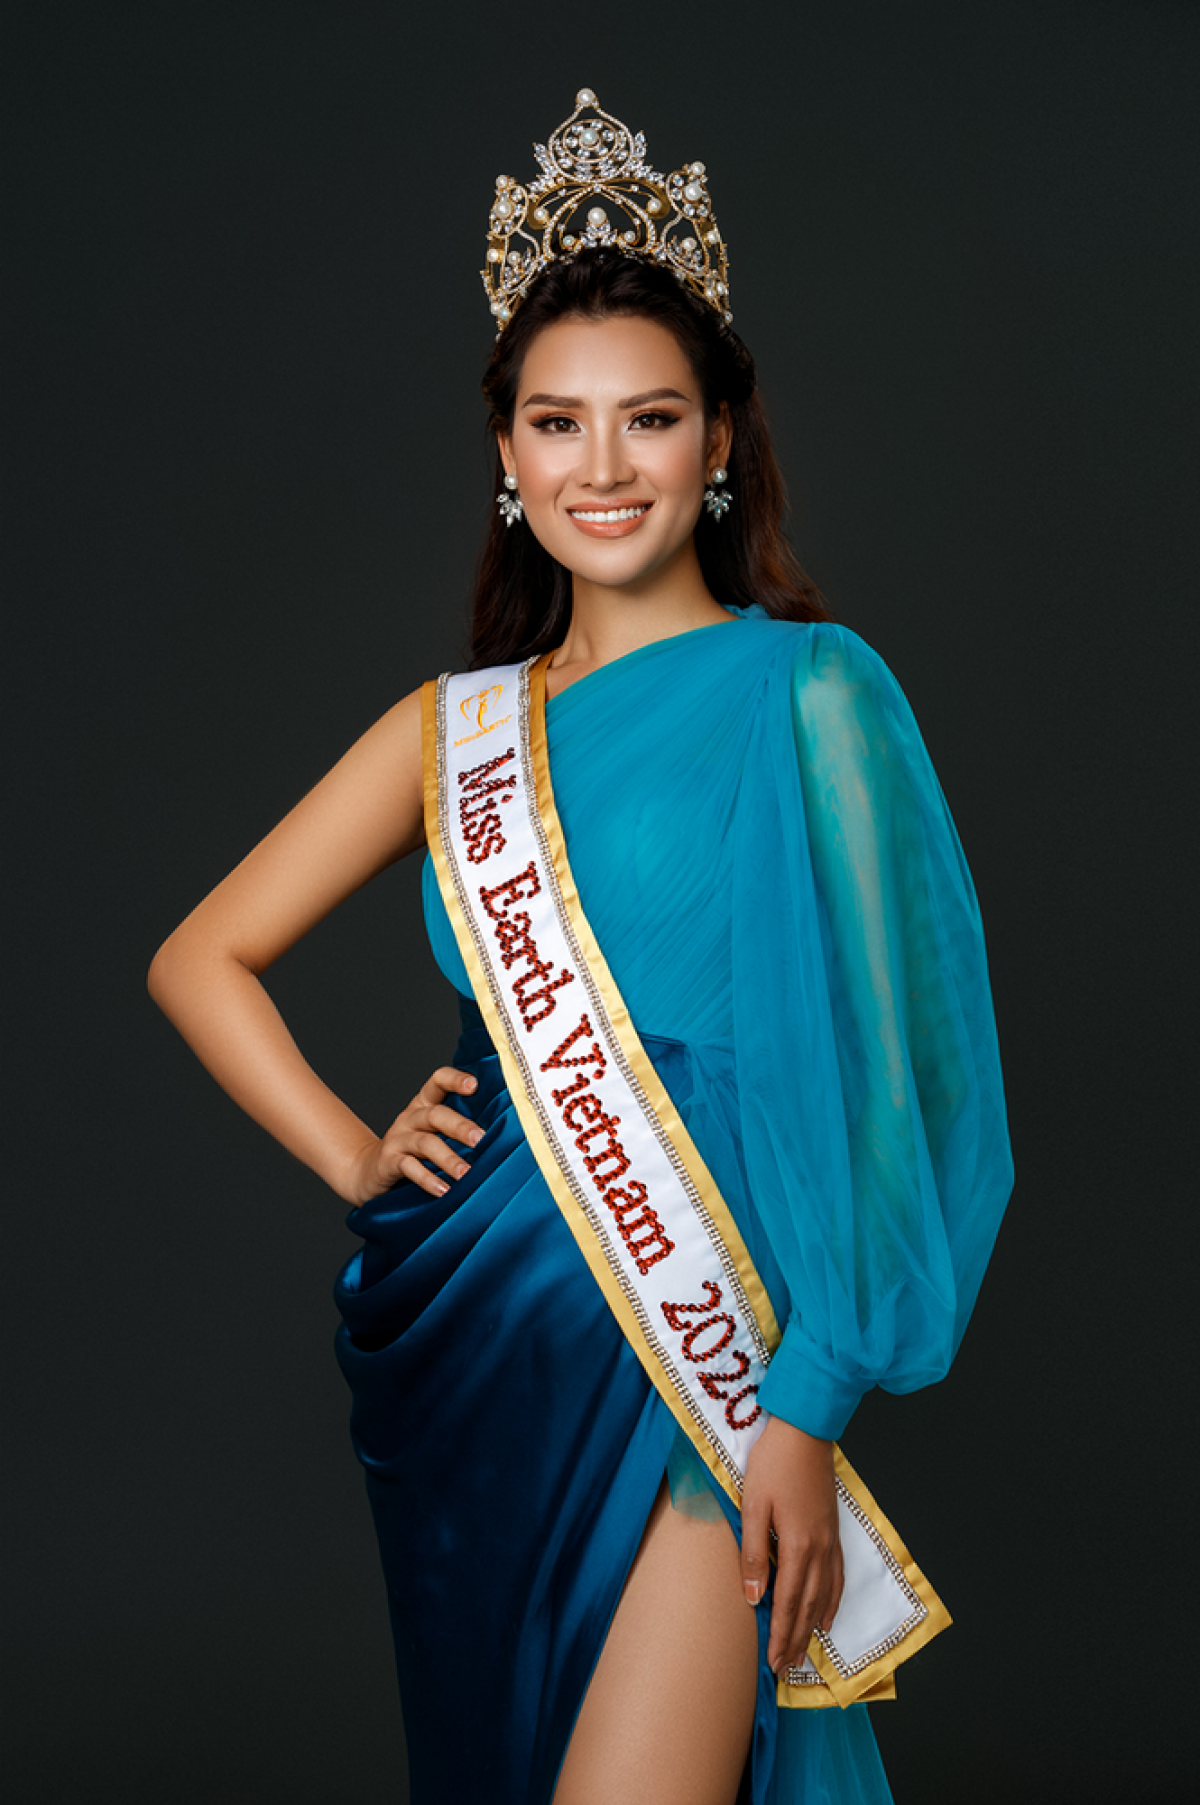 Thai Thi Hoa will represent the country to compete at Miss Earth 2020